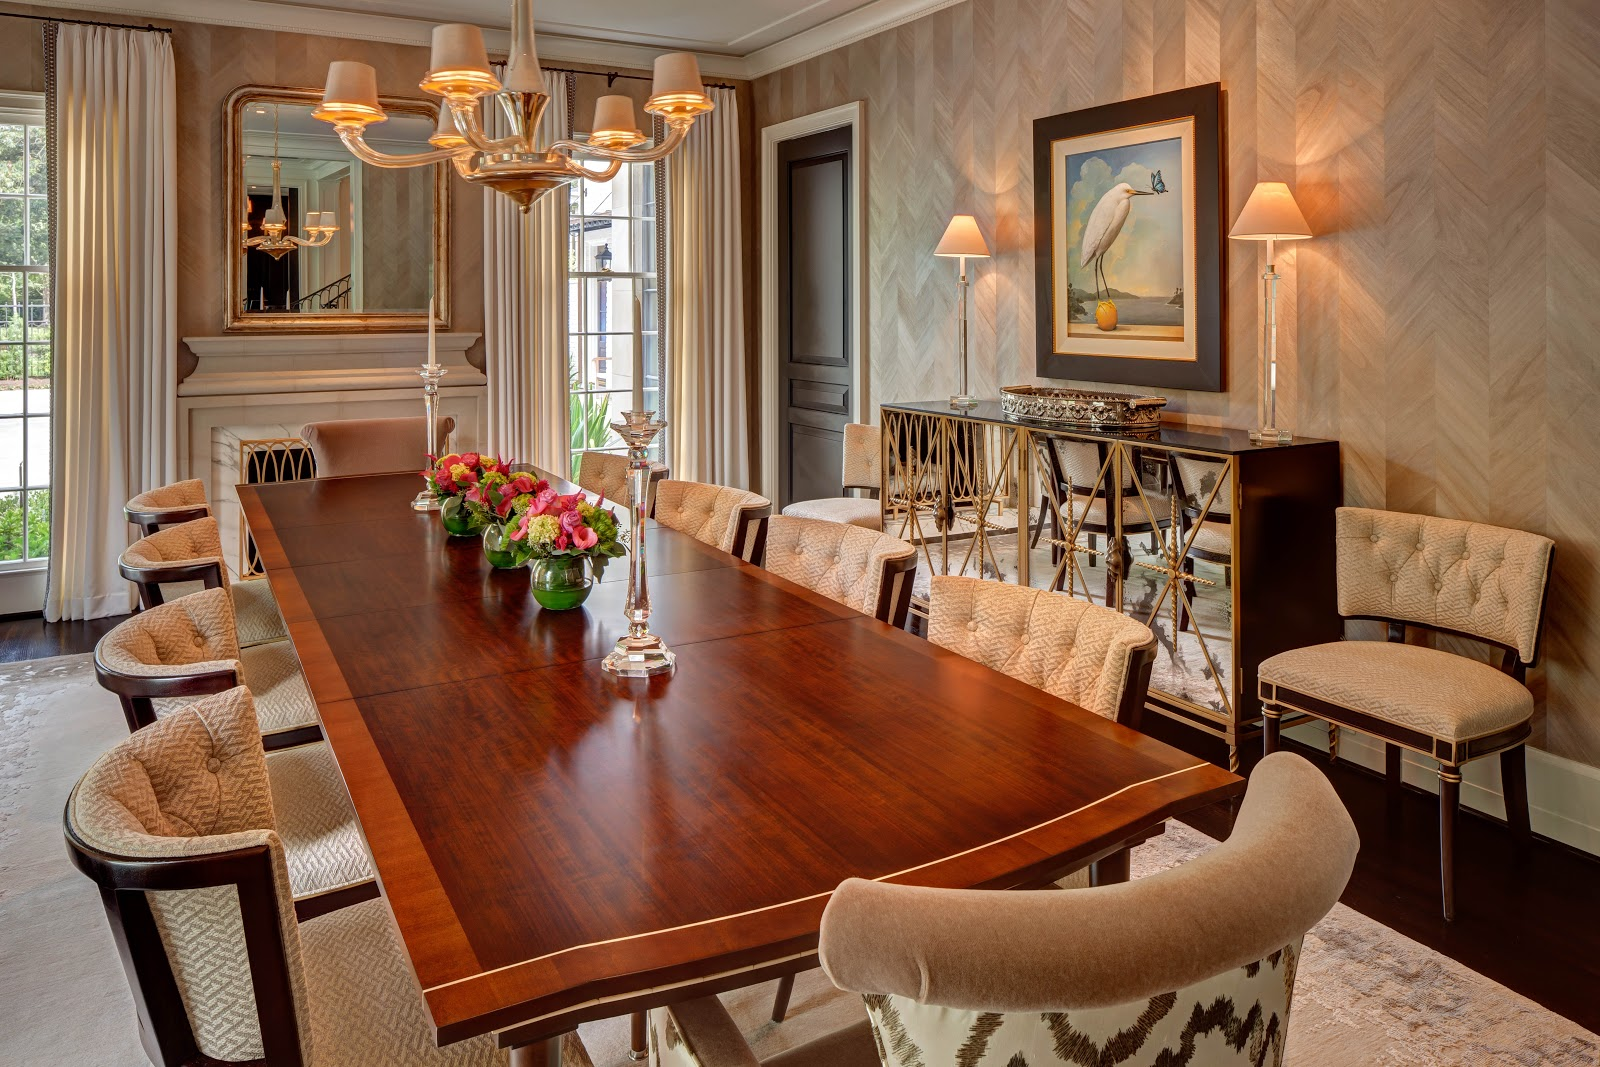 Formal dining room with marble fireplace surround - Laura U Interior Design